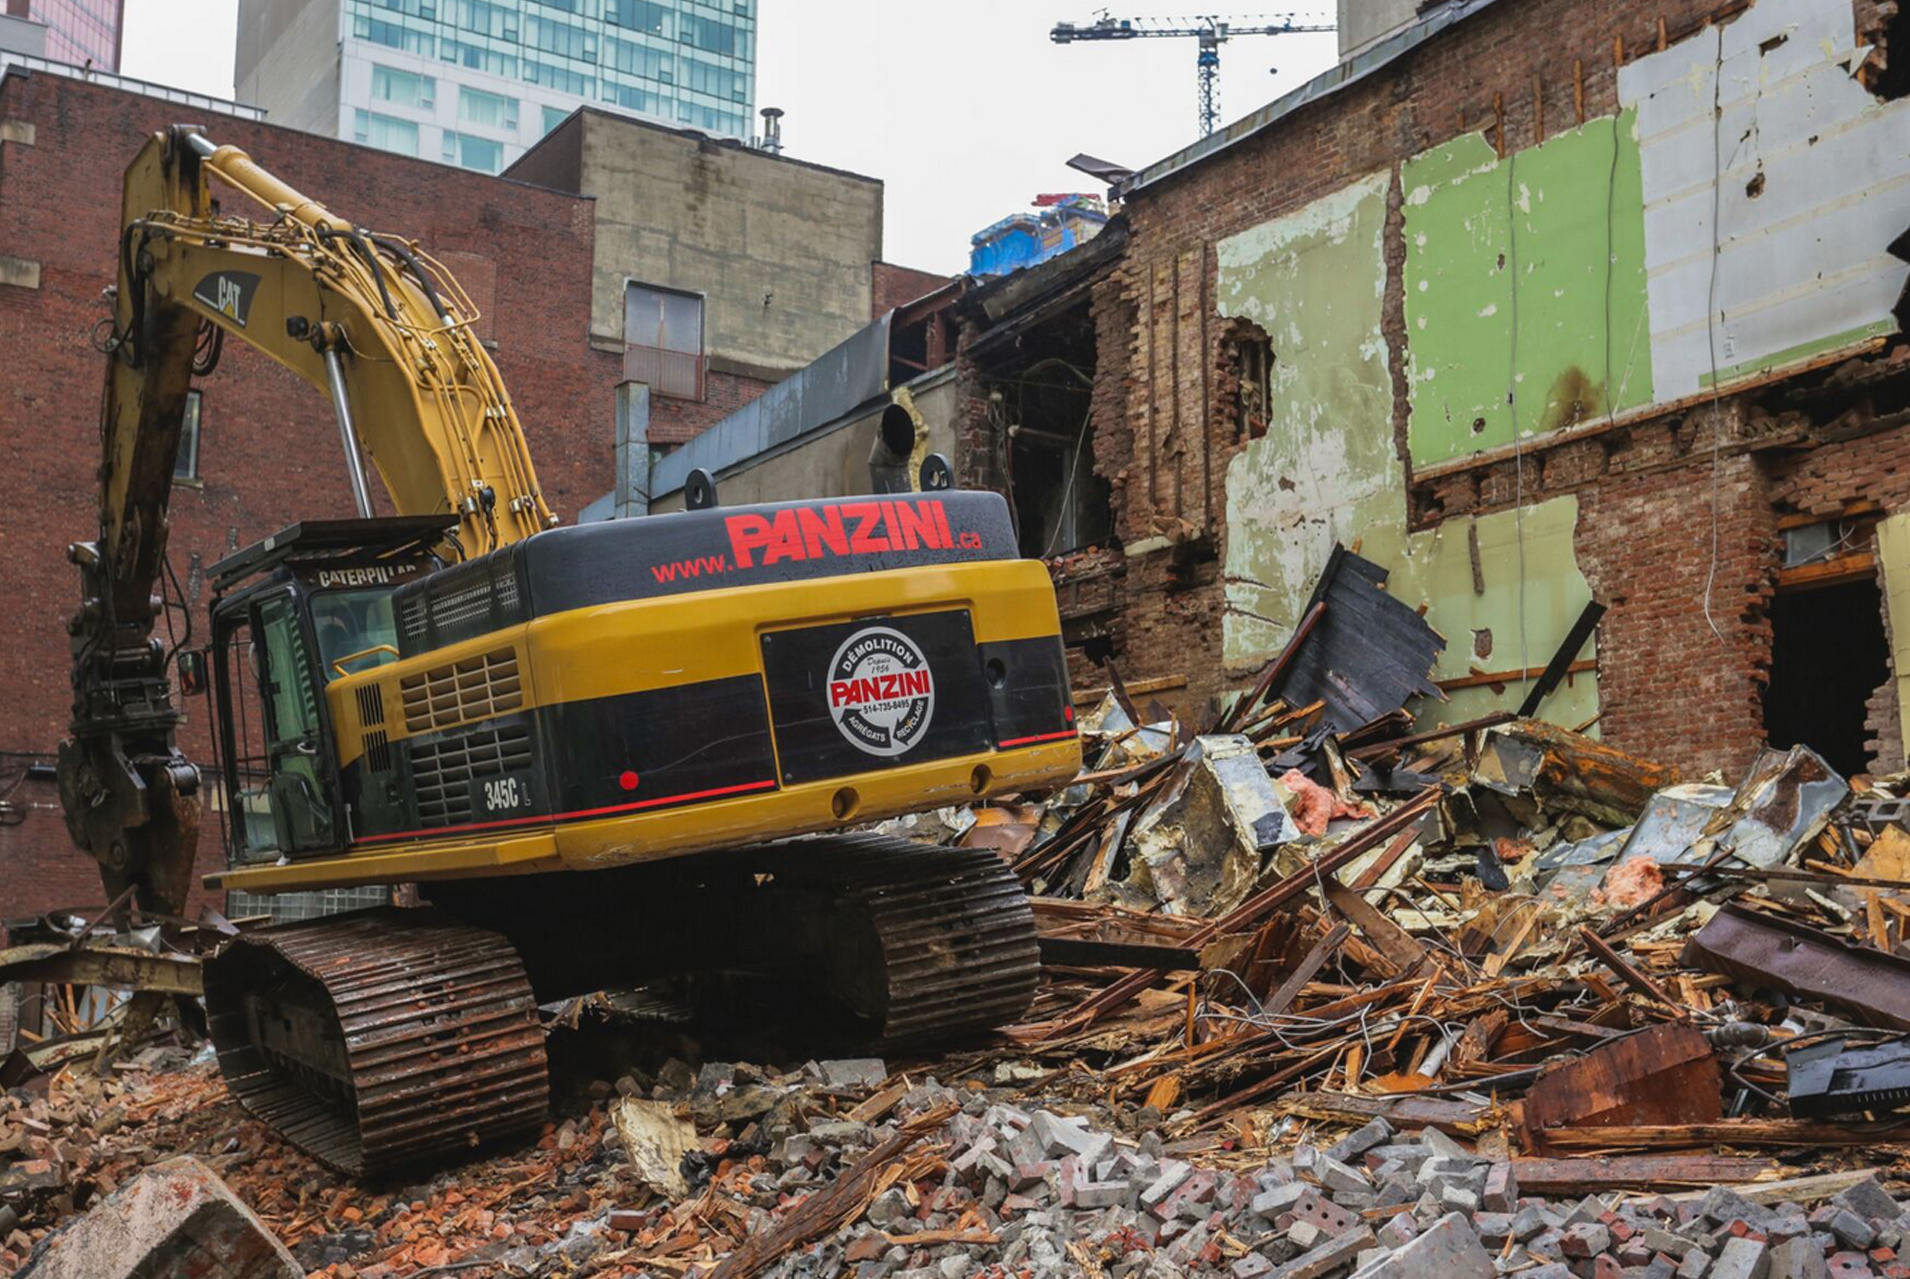 Demolition, recycling and liquidation of construction material 5 - Panzini Demolition - Montreal, Québec